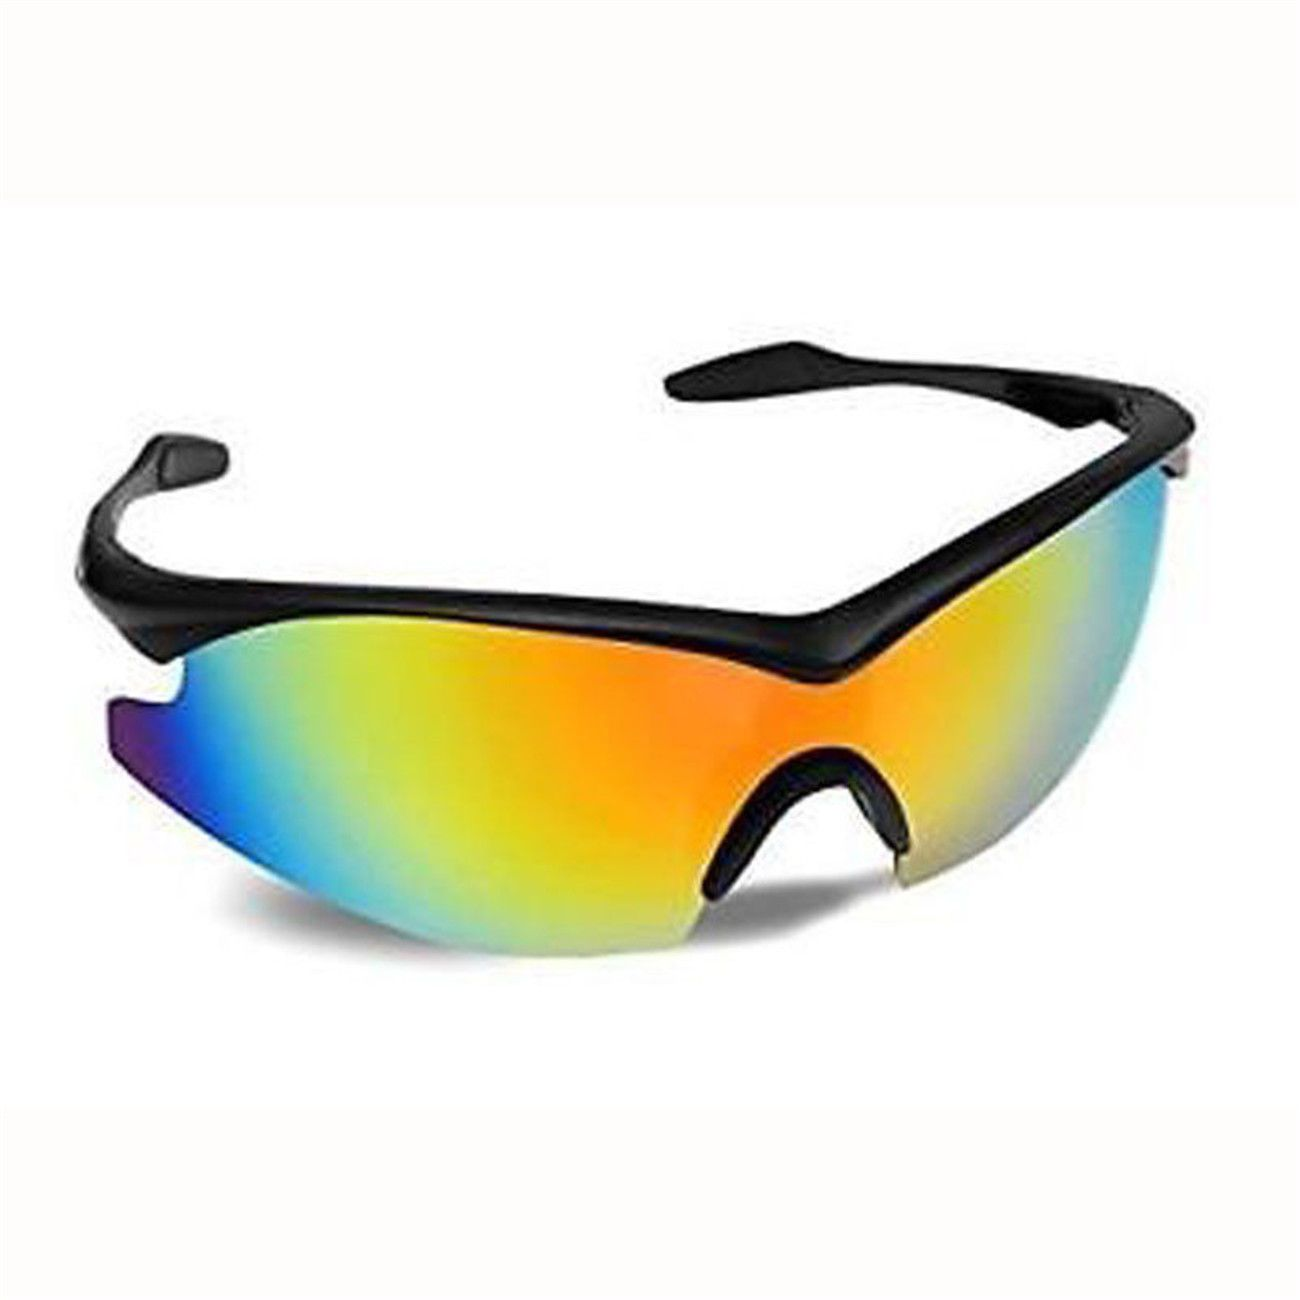 Sunglasses Clothing, Shoes, Accessories Glasses, Sports